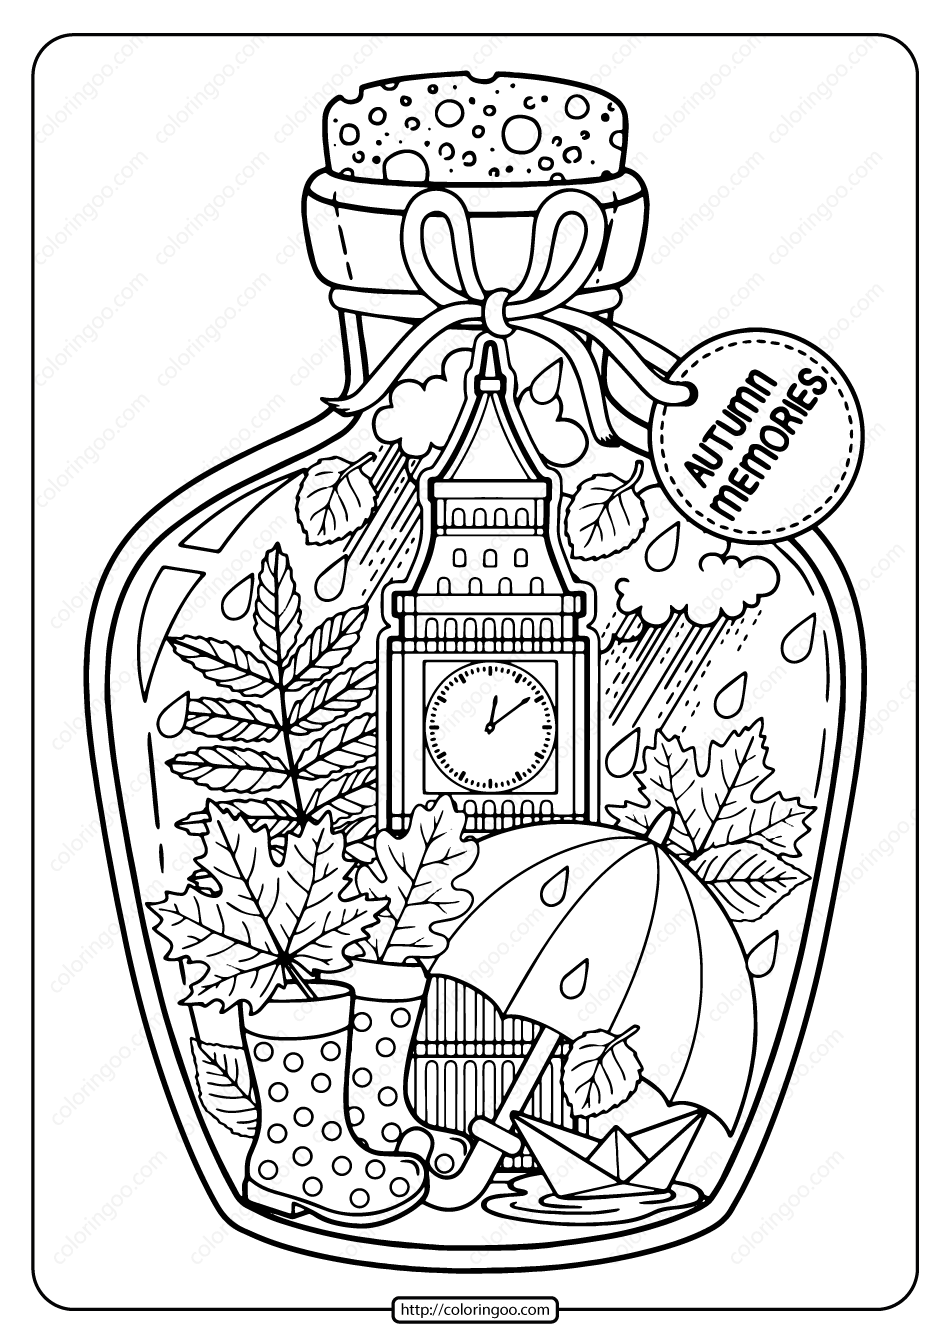 Printable Autumn Memories Pdf Coloring Page Witch Coloring Pages Printable Coloring Book Coloring Pages